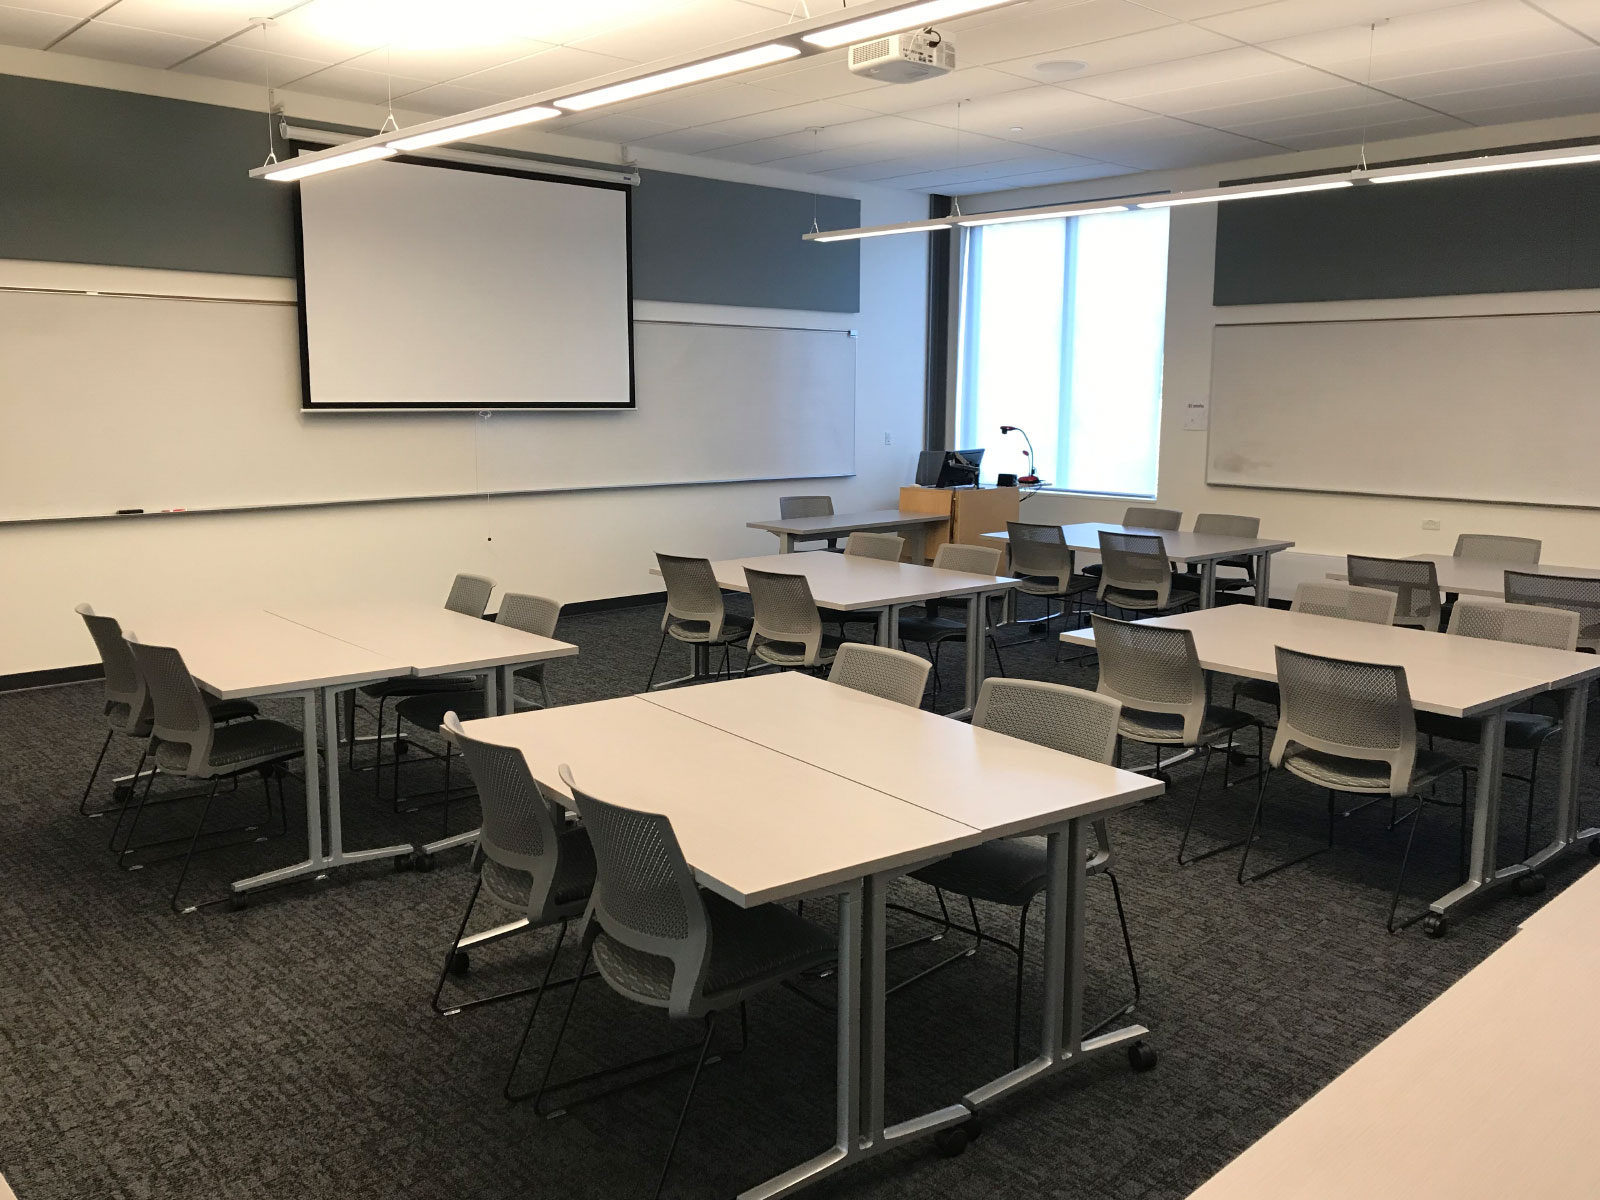 Several tables with chairs in front of a projector screen in a Oregon City campus classroom